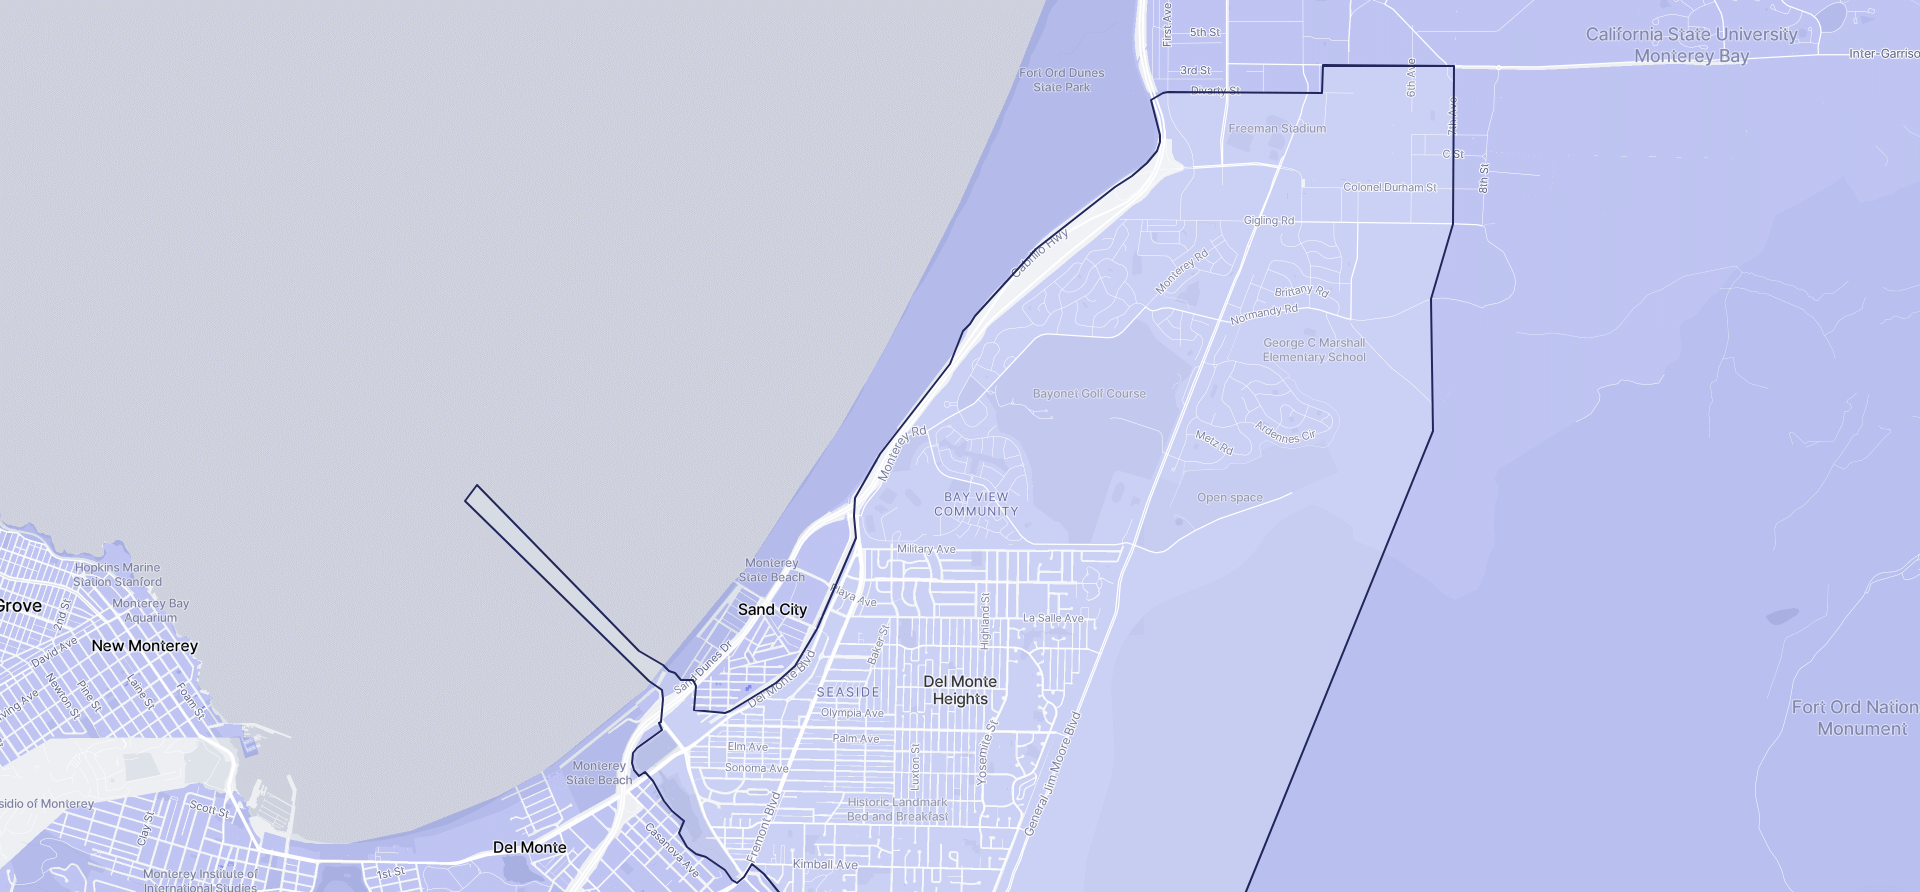 Image of Seaside boundaries on a map.